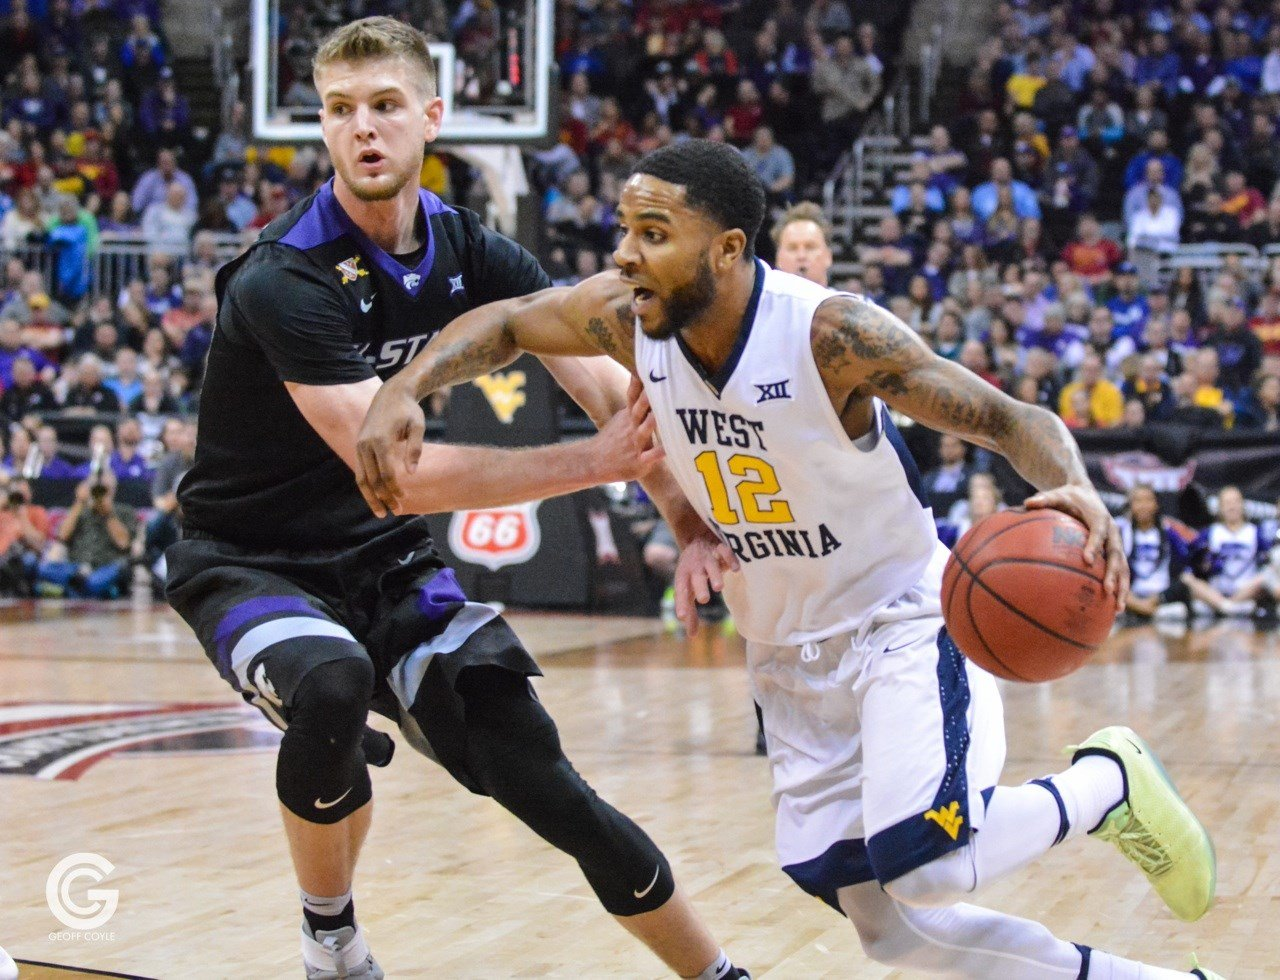 Tarik Phillip scored 13 points in the second half as WVU edged Kansas State 51-50.